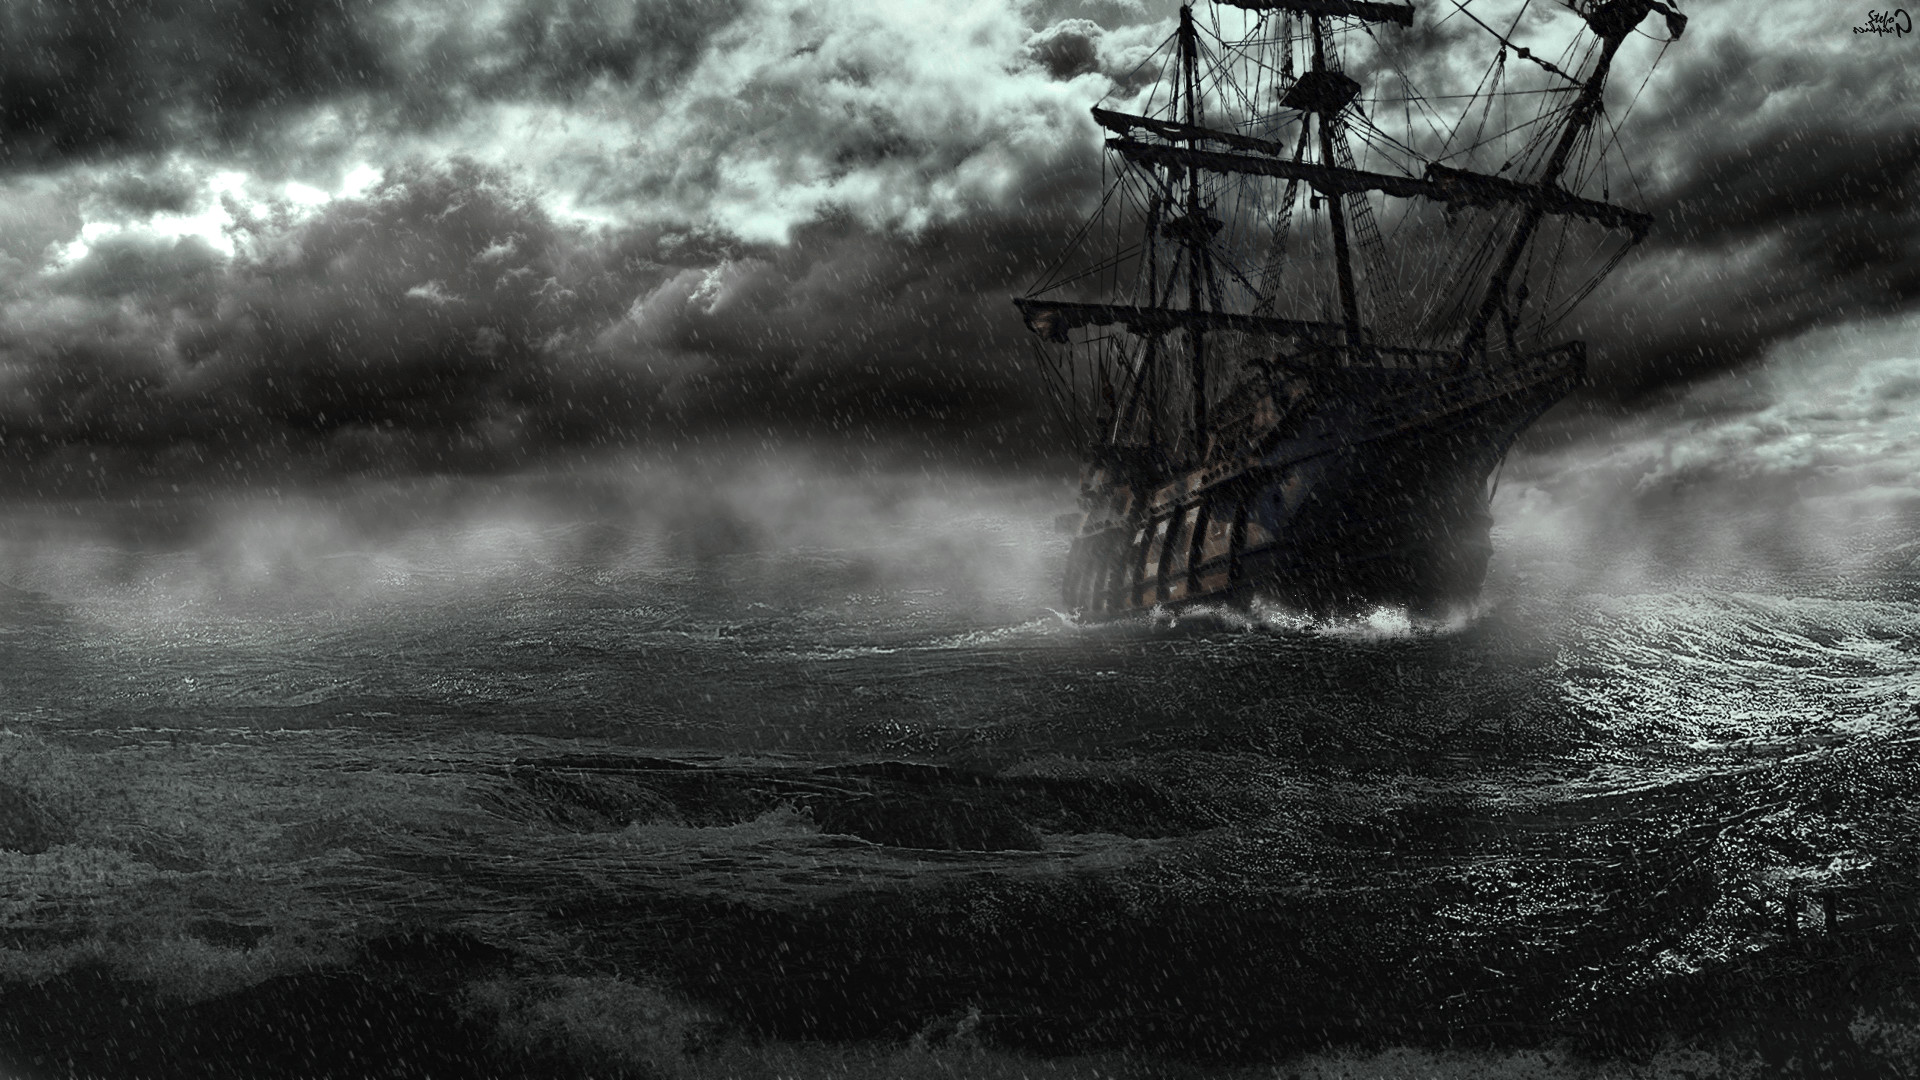 Old Pirate Ships Old Sailing Ships Pirate Wallpapers Windows 1920 .